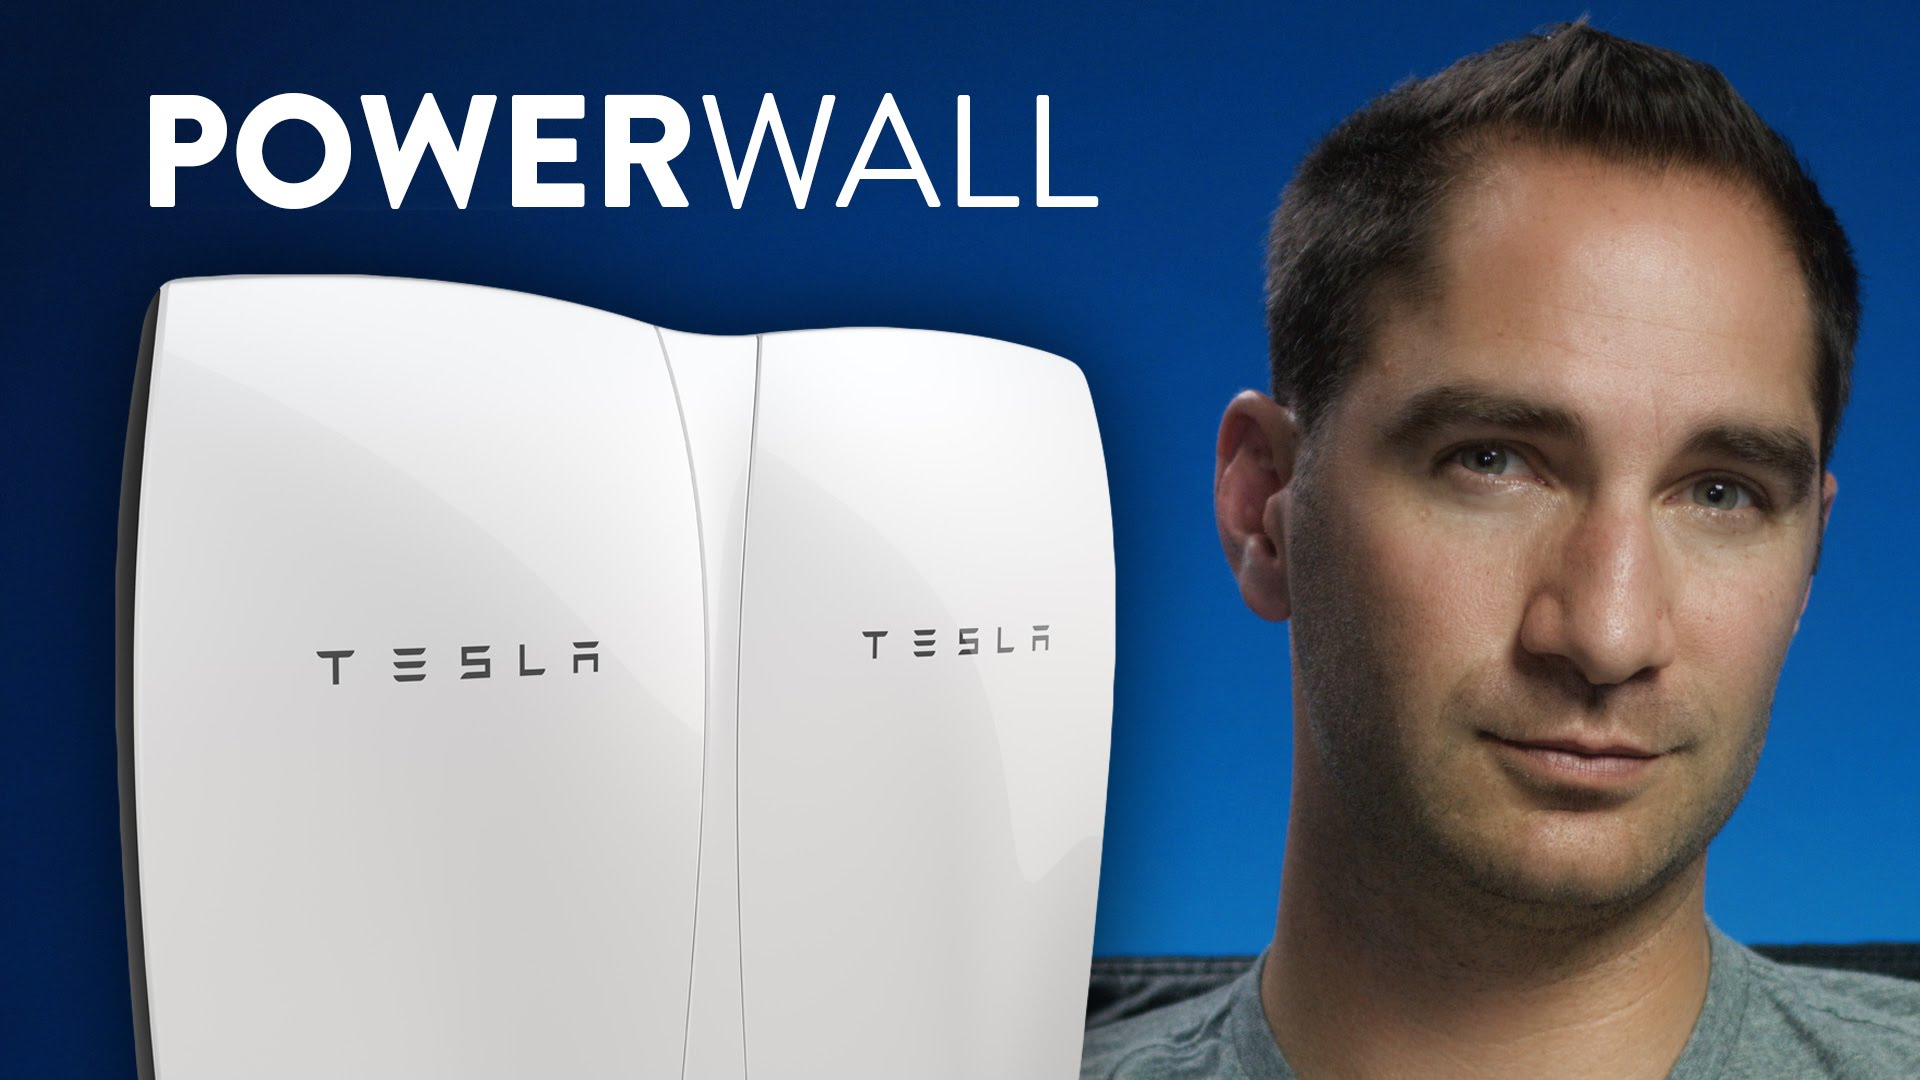 Tesla's Powerwall Home Battery